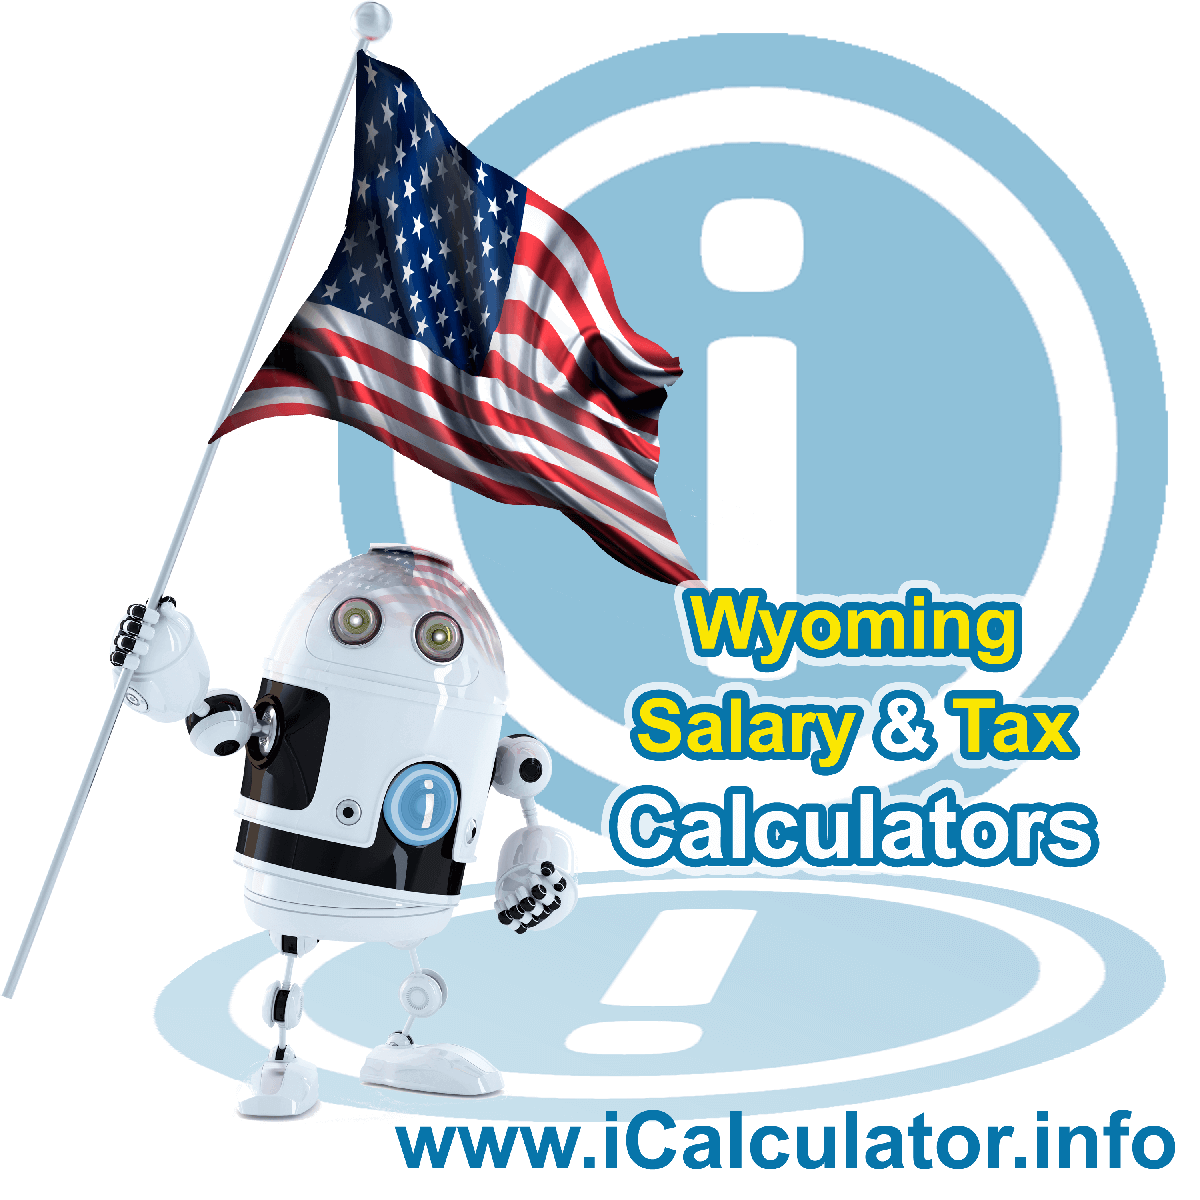 Wyoming Salary Calculator 2019 | iCalculator | The Wyoming Salary Calculator allows you to quickly calculate your salary after tax including Wyoming State Tax, Federal State Tax, Medicare Deductions, Social Security, Capital Gains and other income tax and salary deductions complete with supporting Wyoming state tax tables